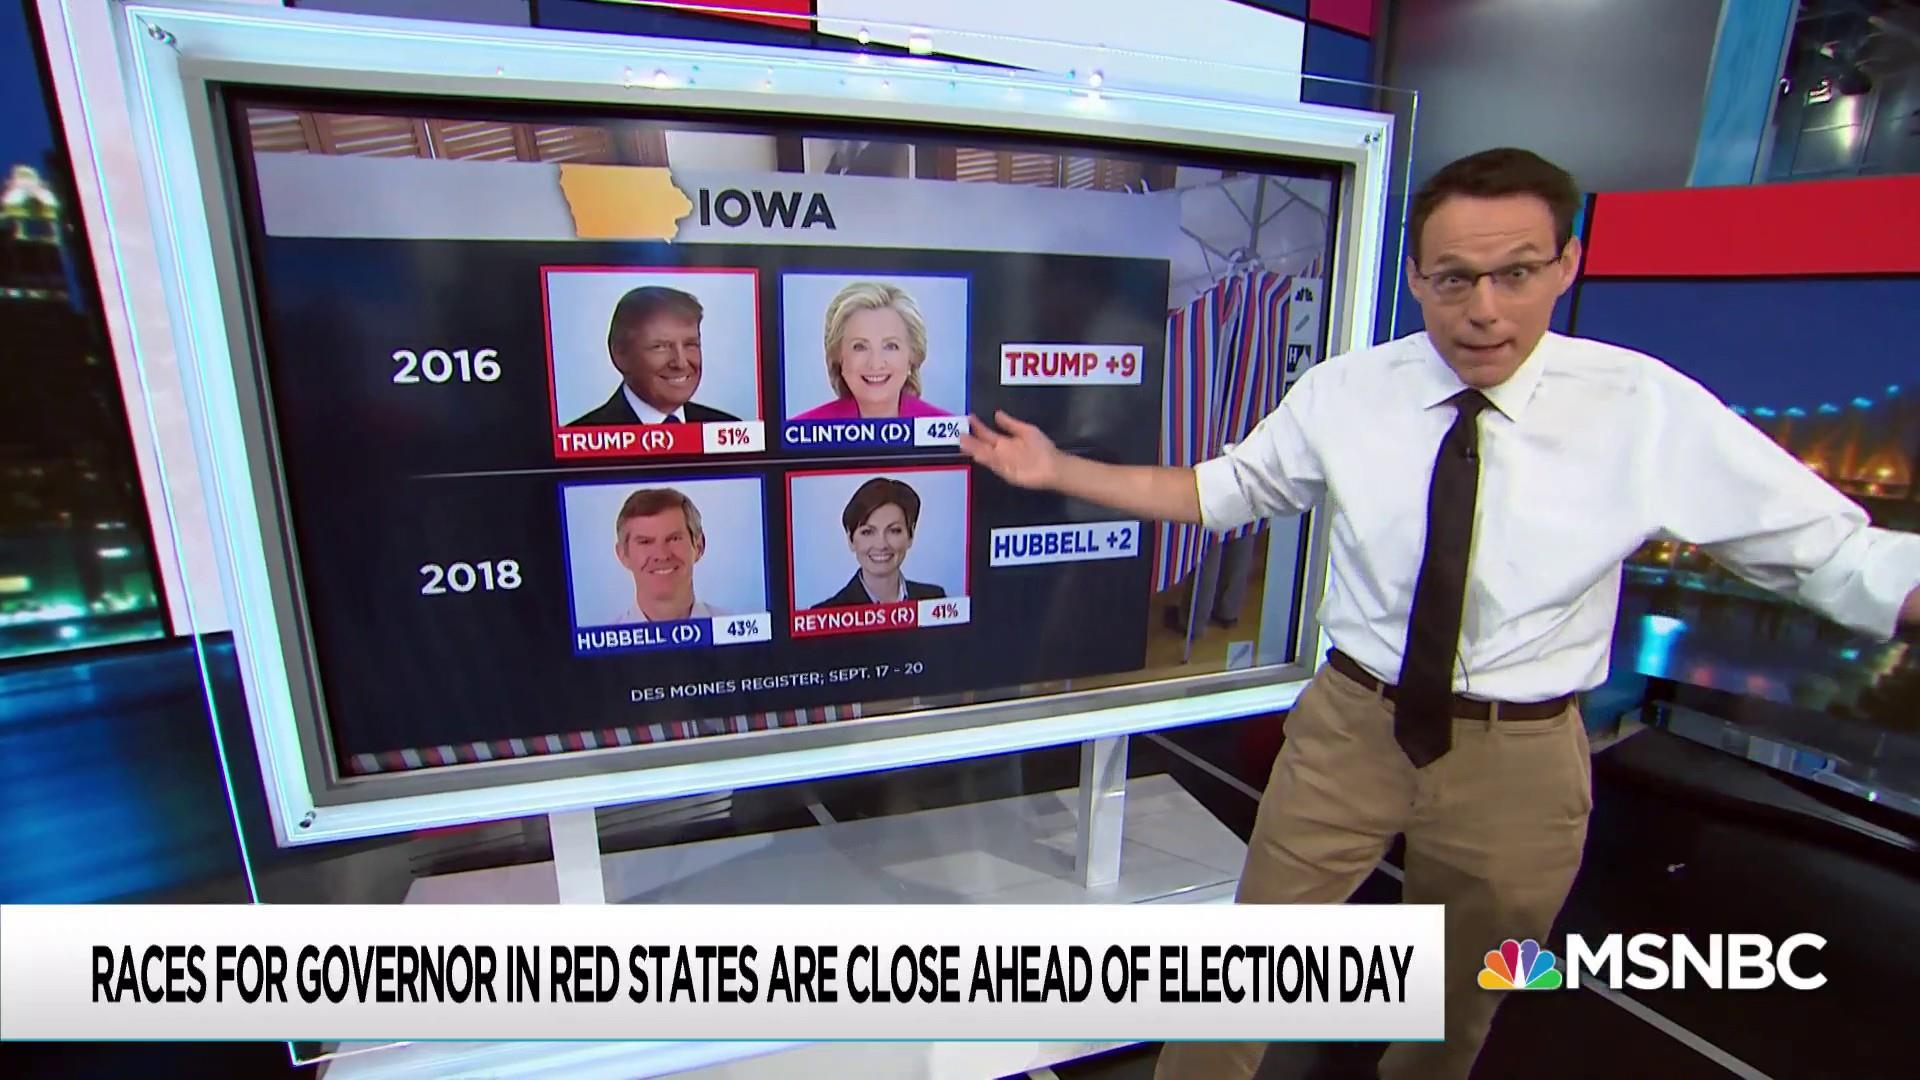 Obama/Trump states not a lock for Republicans in governor races